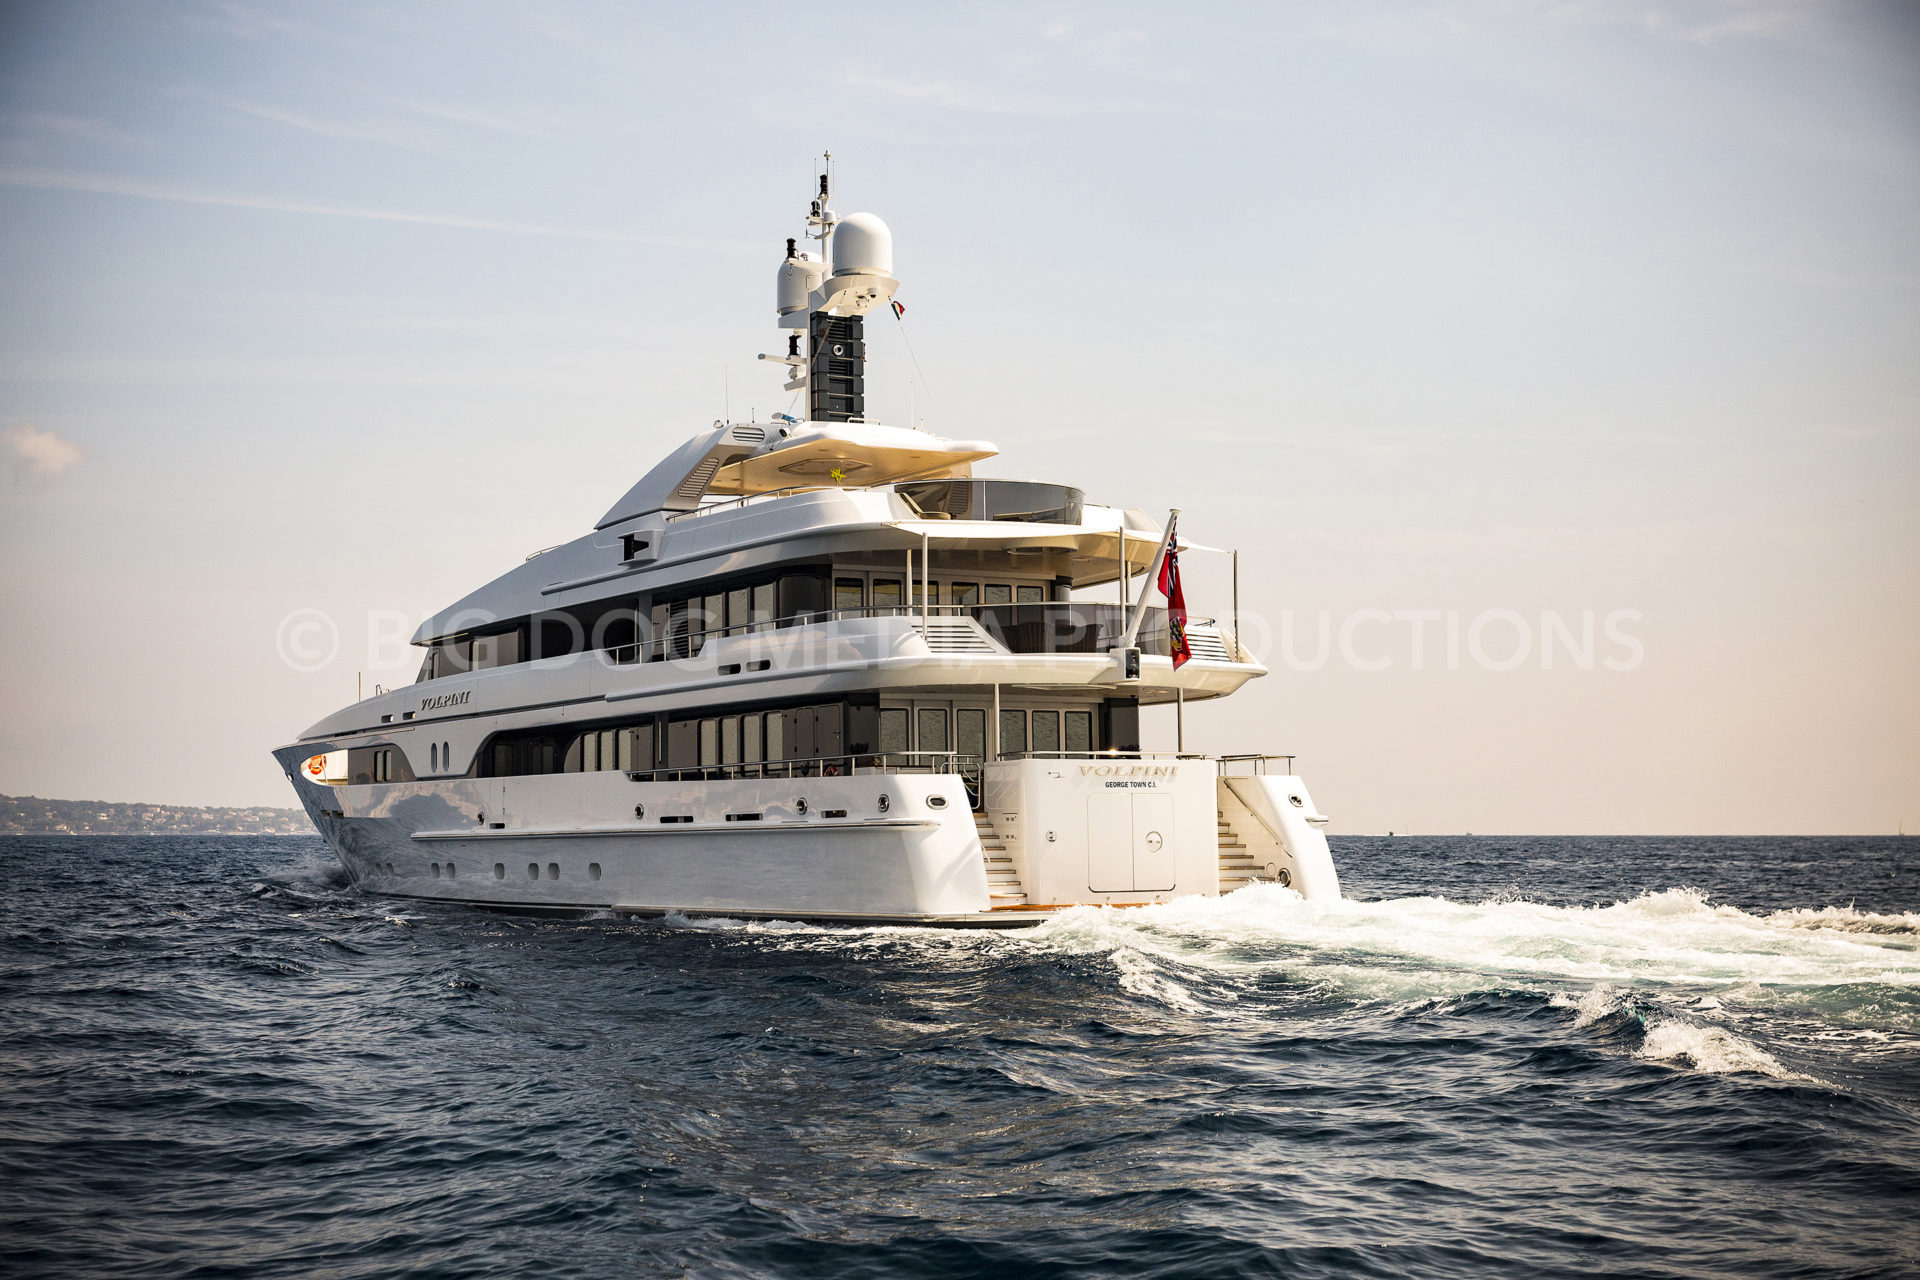 M/Y Volpini shoot in Cannes